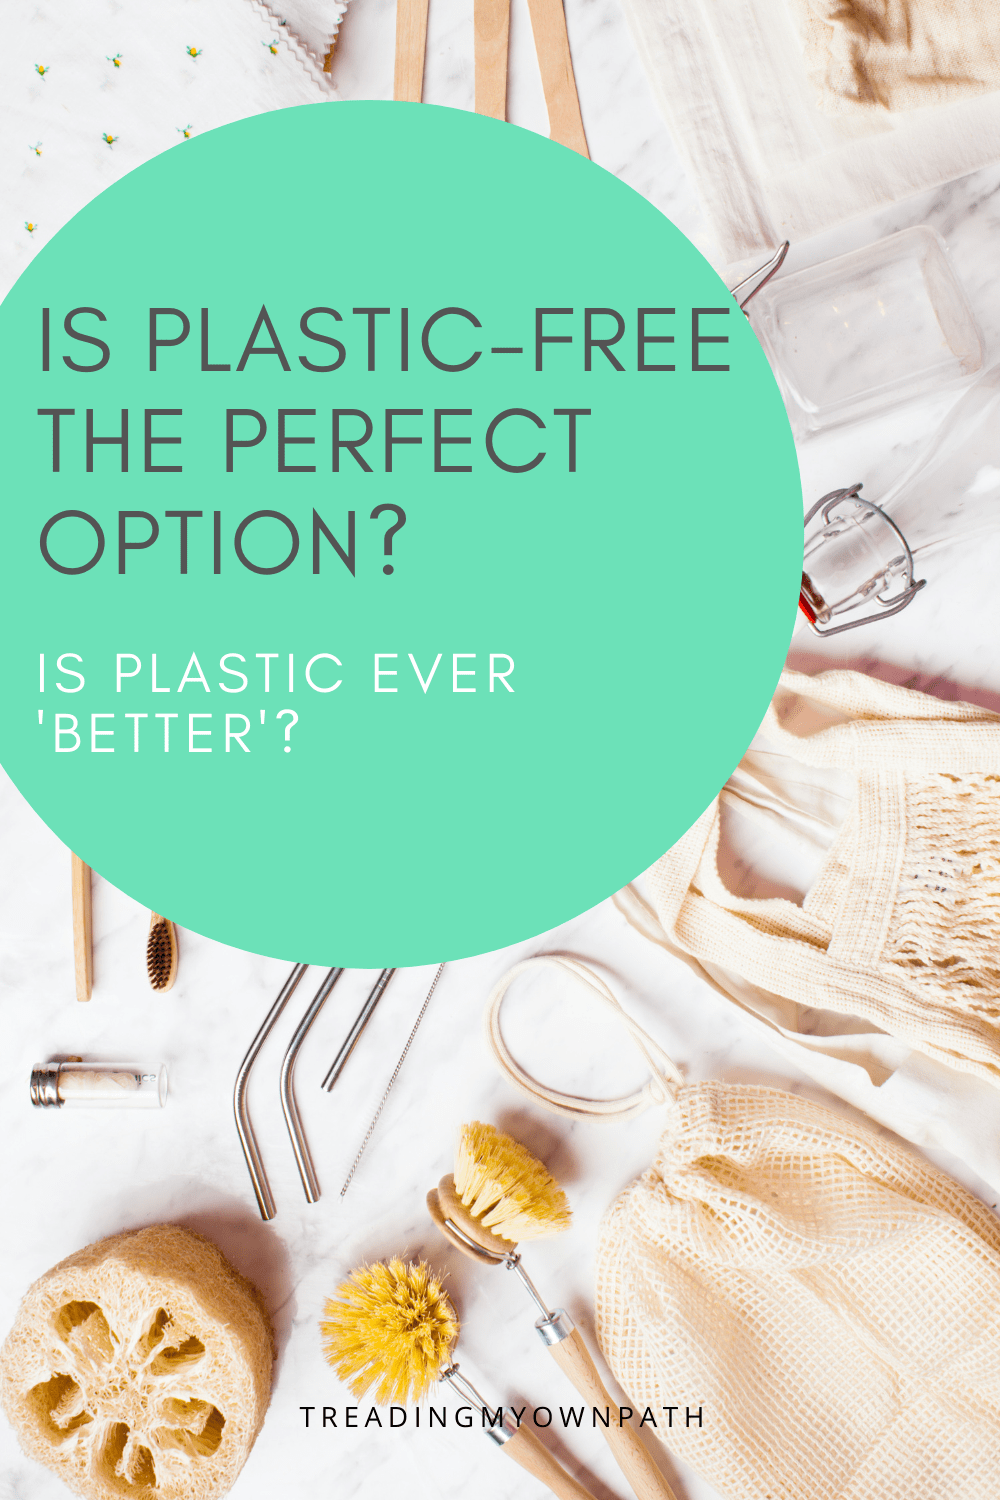 Is Plastic-Free the Perfect Option? (Hint: Not Always)